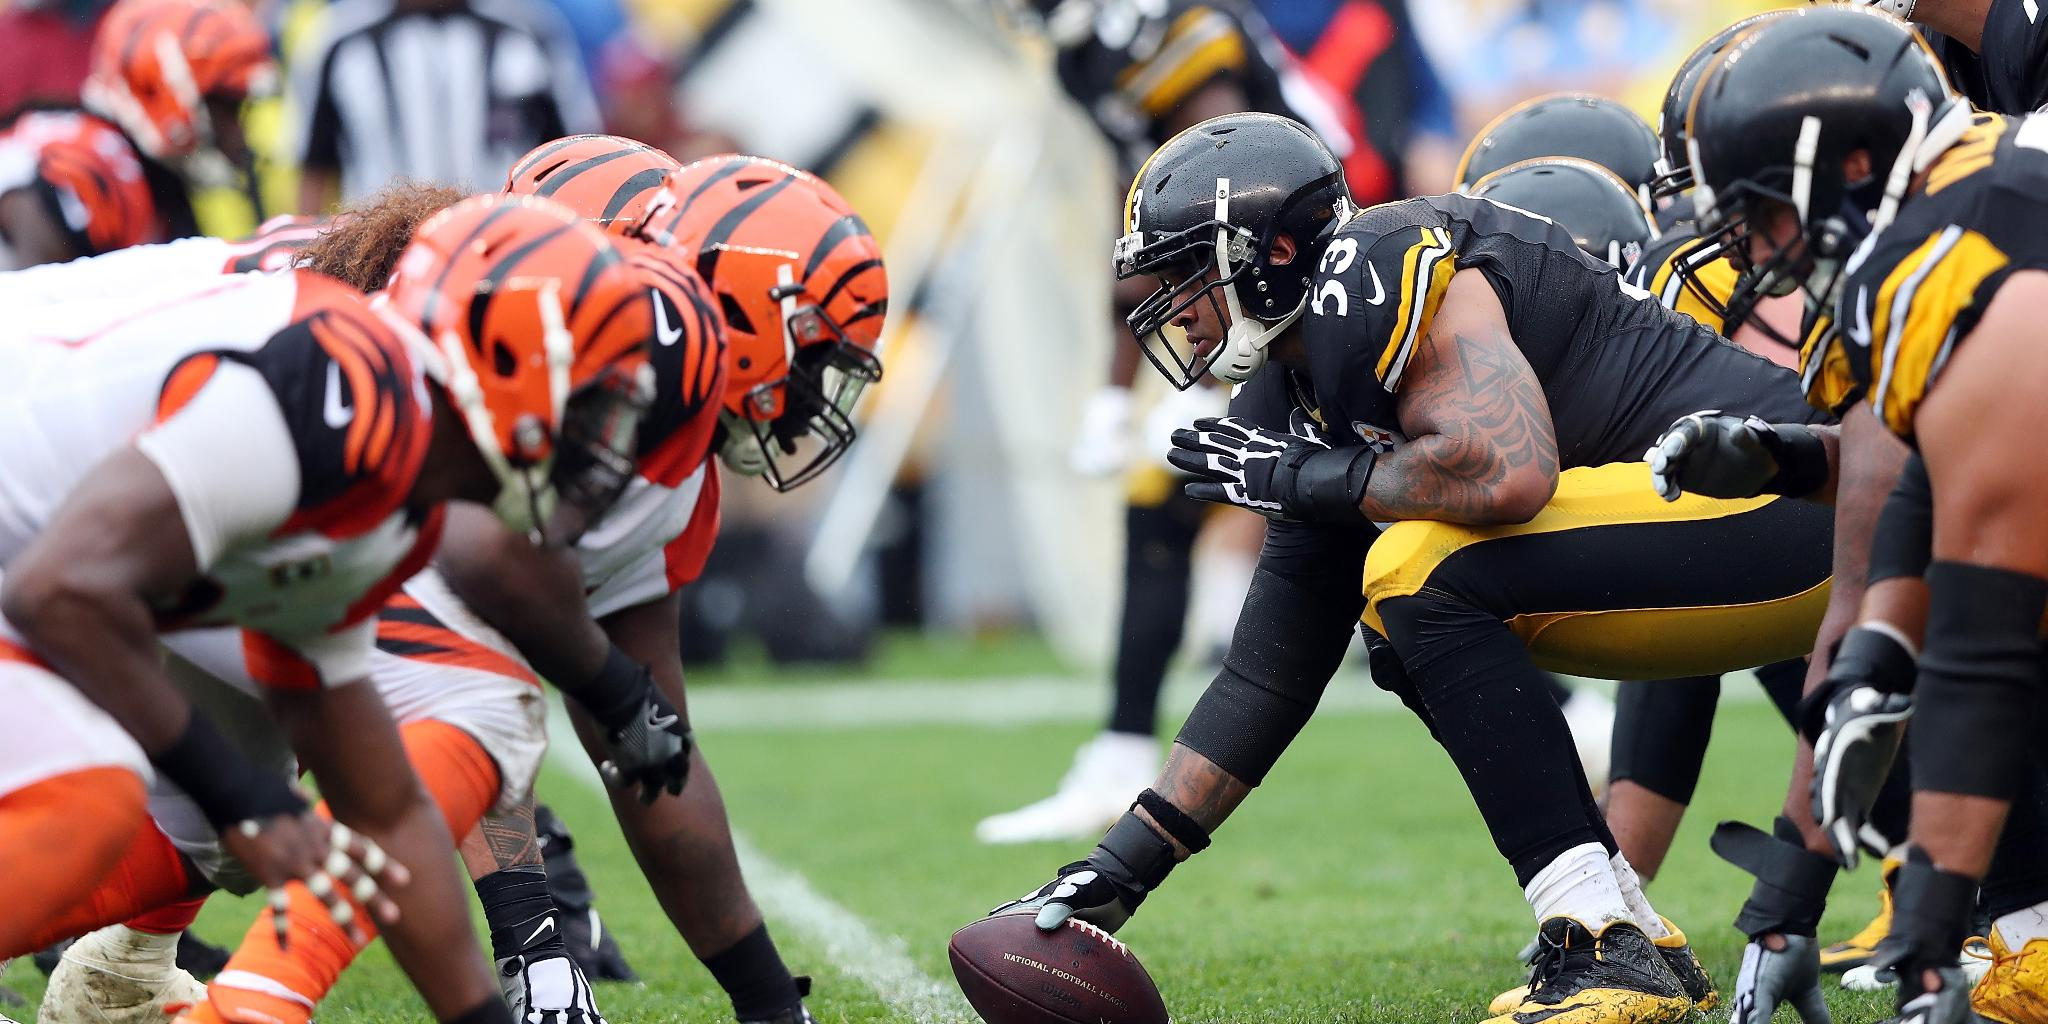 .@Bengals-@steelers game in Week 7 flexed to later start time: https://t.co/UeeEGsYlkB https://t.co/GZUD83BfFB